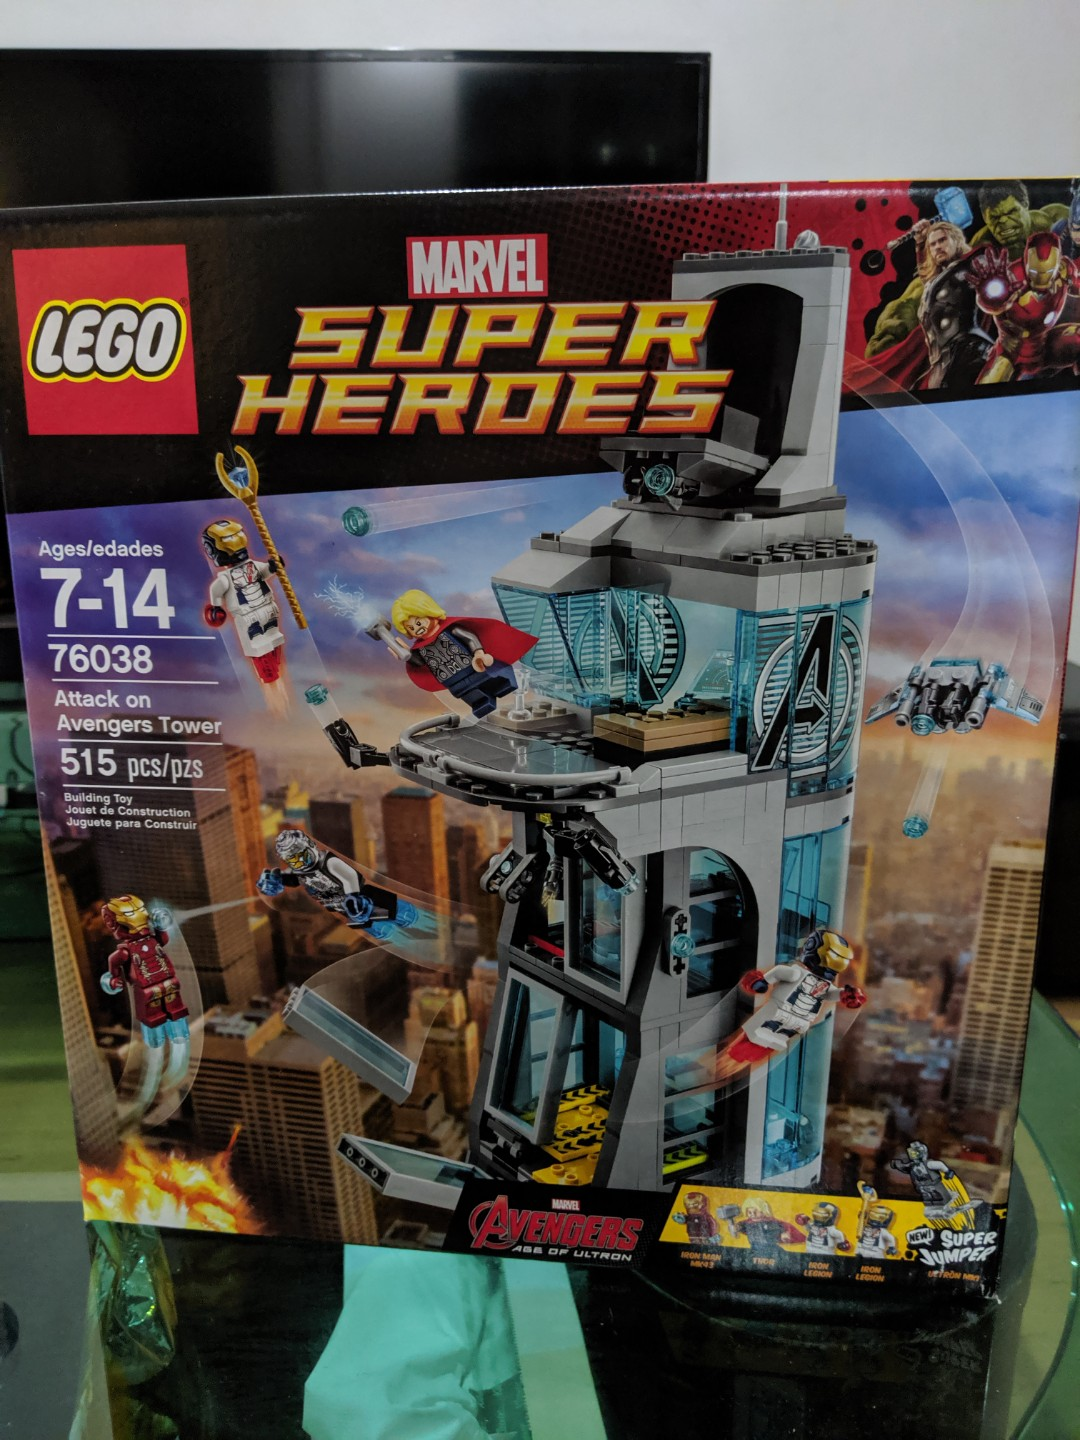 Superhero On Airport Avengers Tower Attack Wtt76038 76051 With Battle fb7yIYgvm6